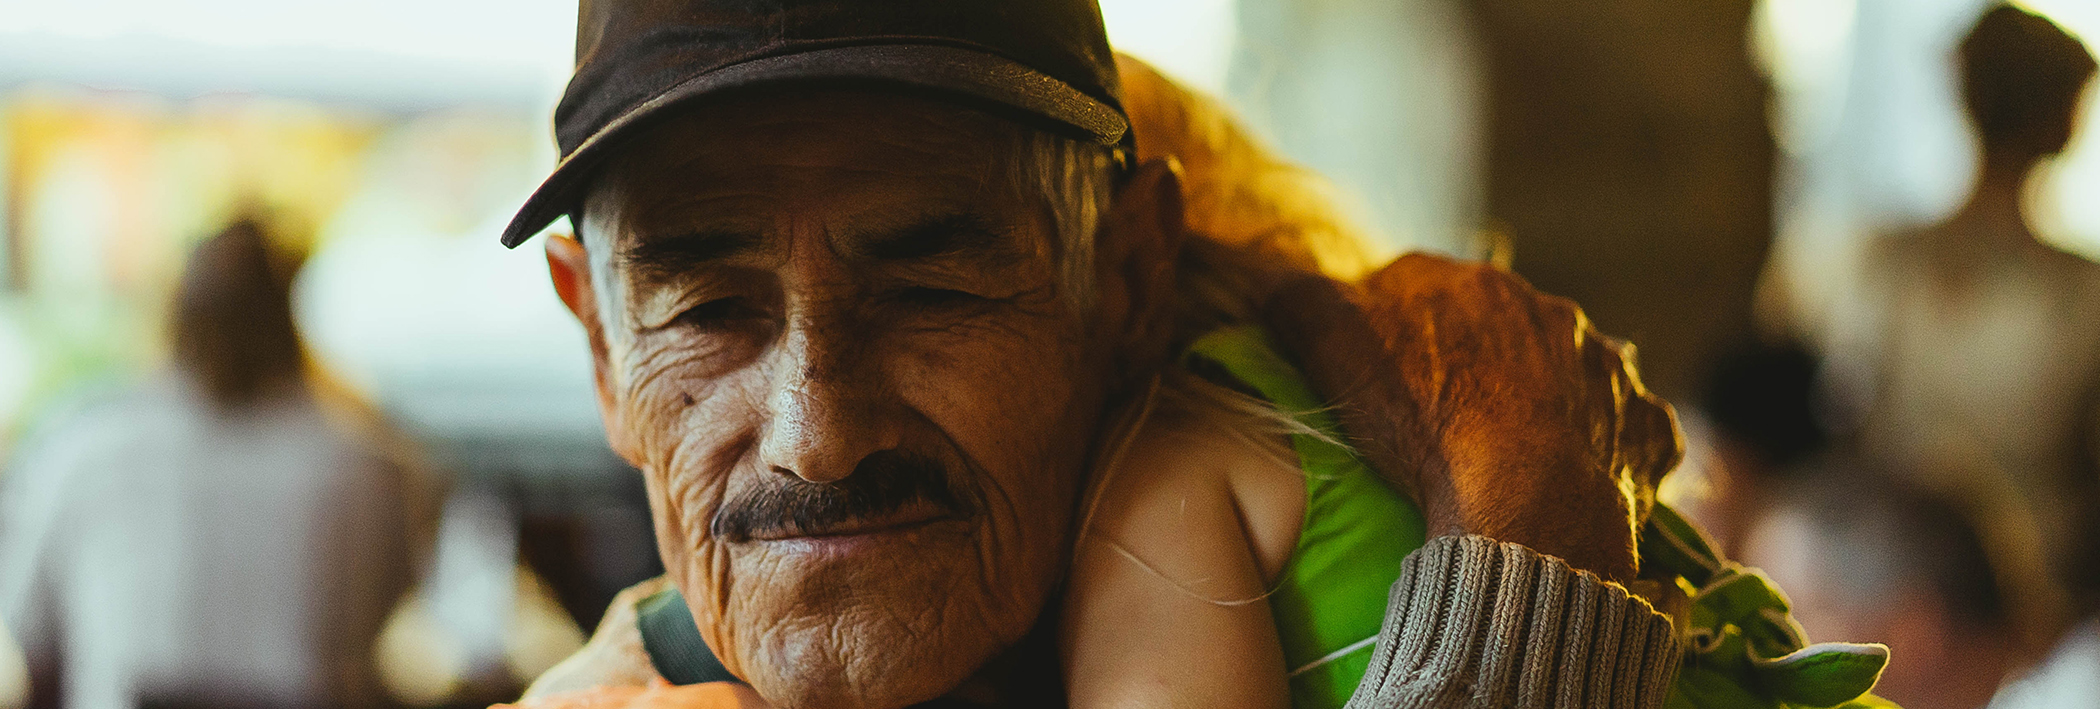 Elderly man holding his grandchild - ithriveX pain relief cream soothe aching muscles and joints associated with aging.